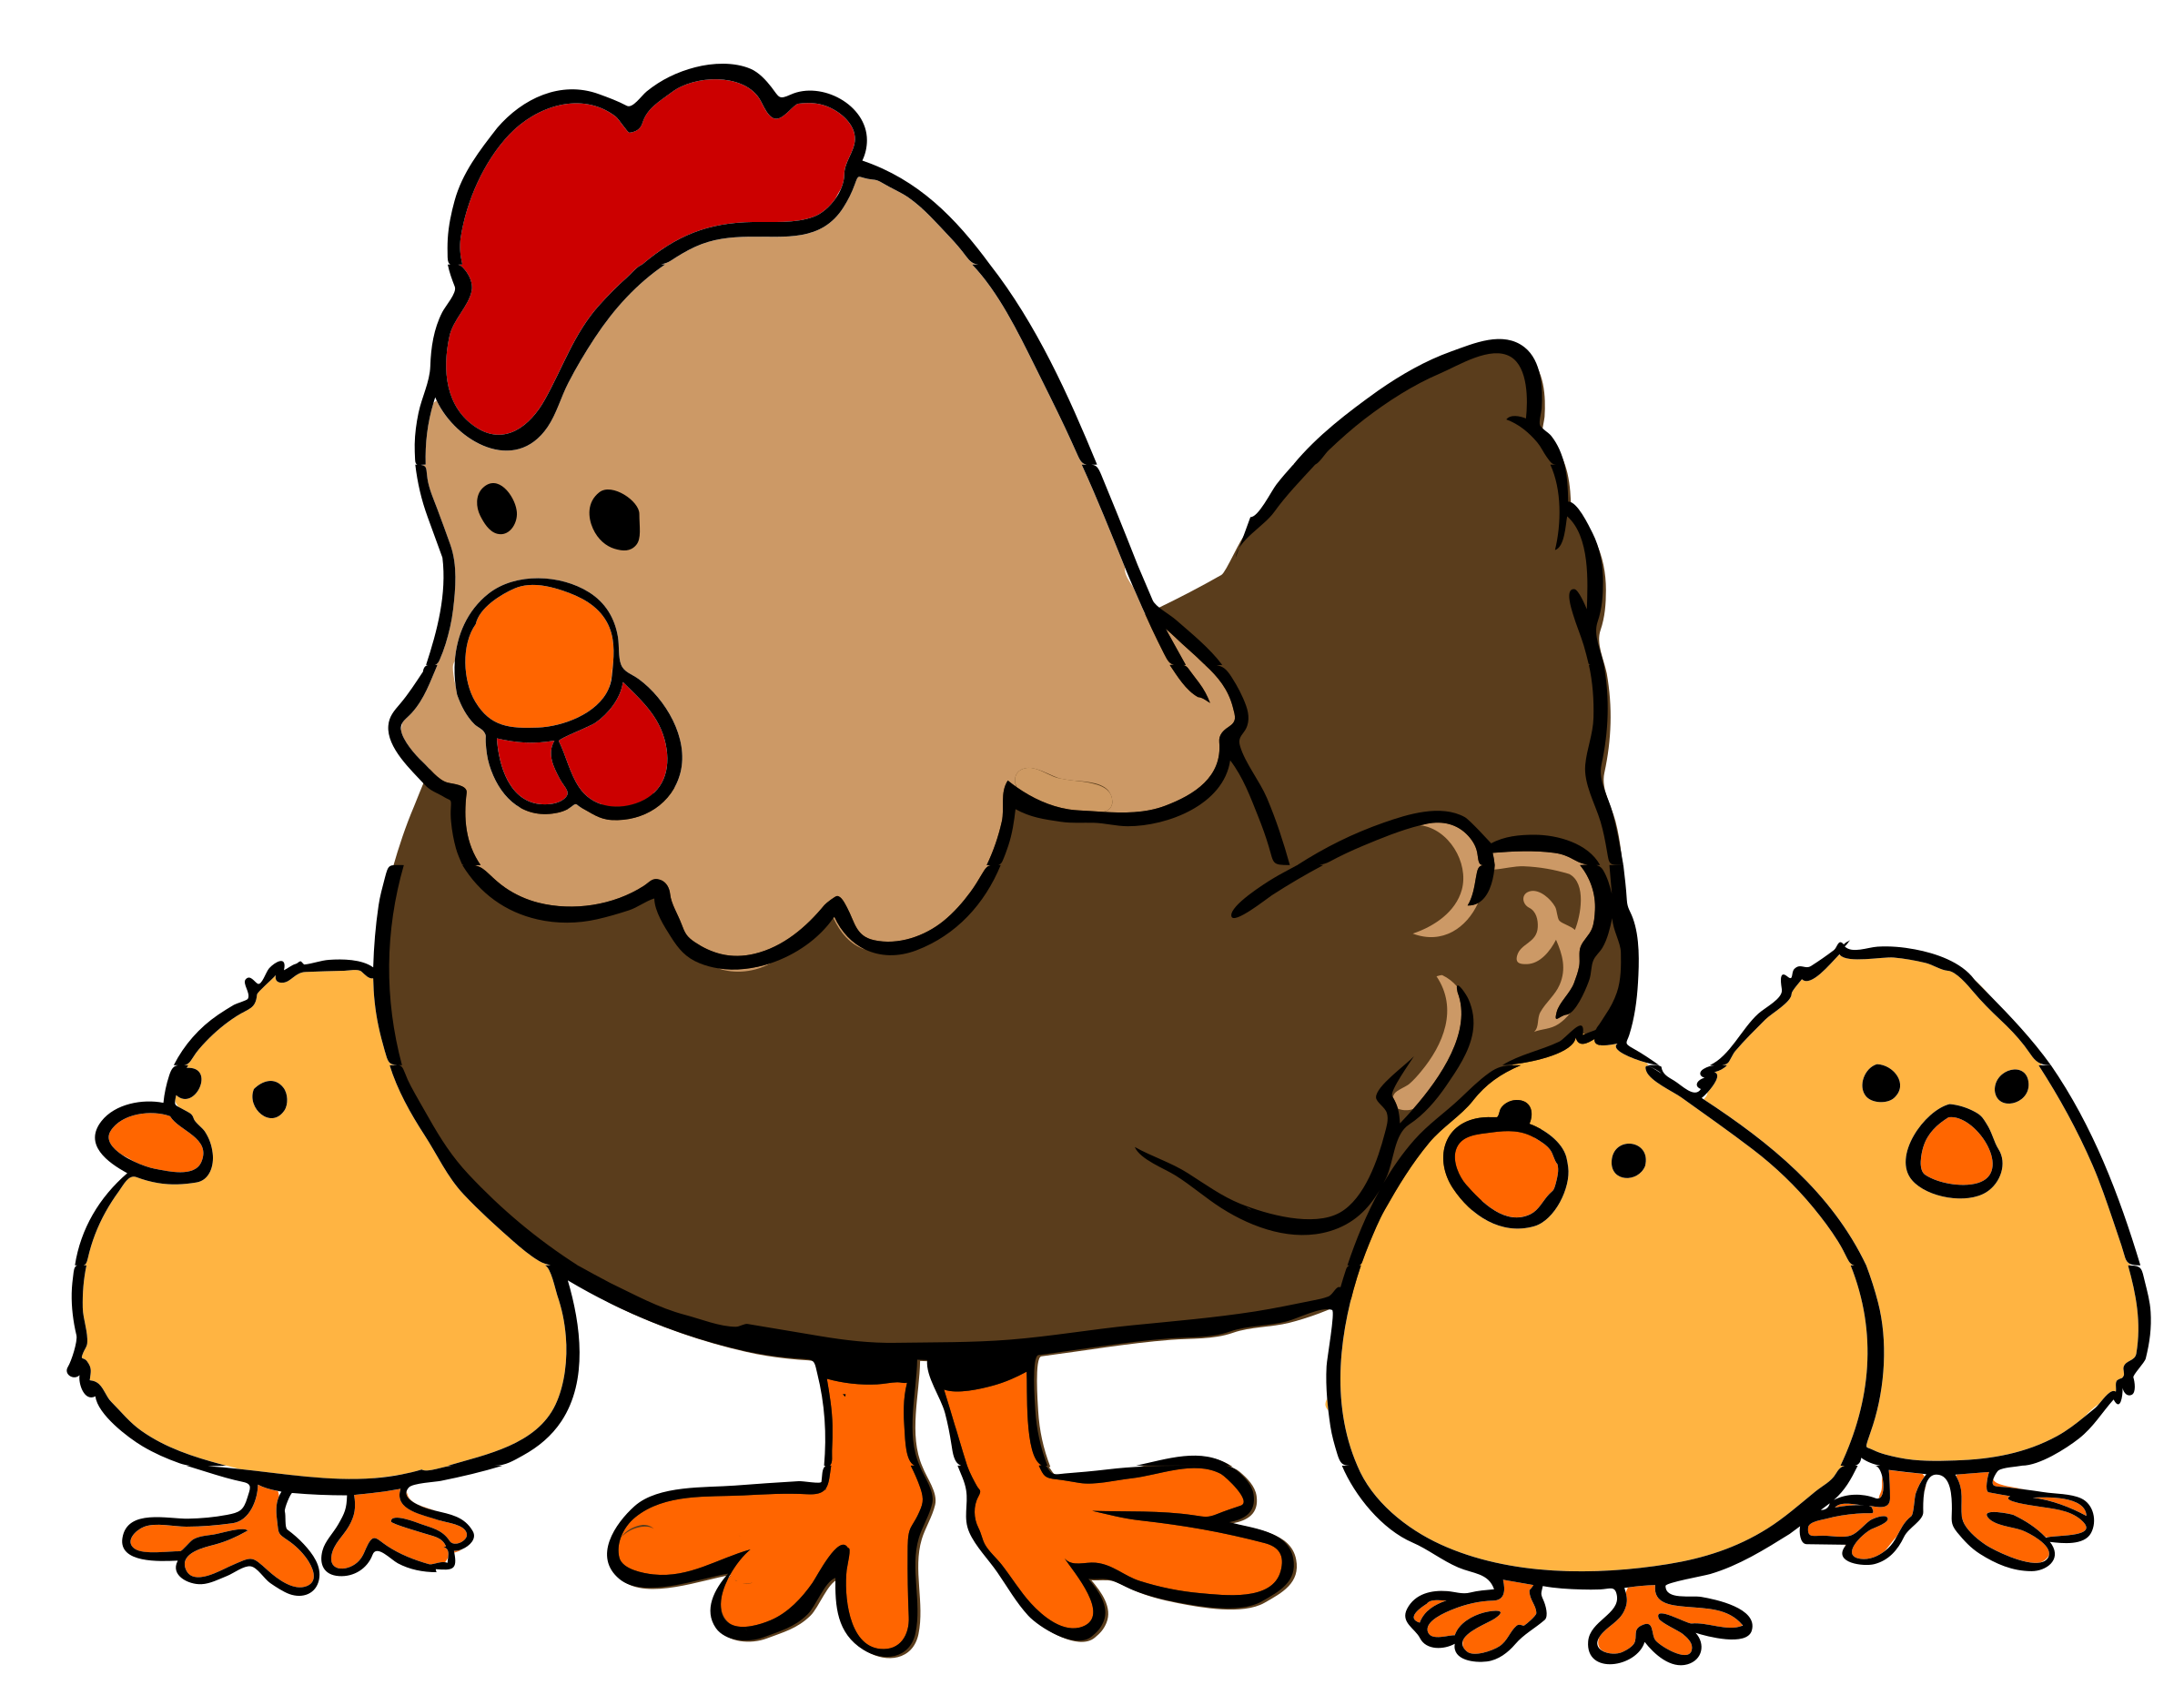 Turkey chick clipart png freeuse stock Chicken Clipart at GetDrawings.com | Free for personal use Chicken ... png freeuse stock